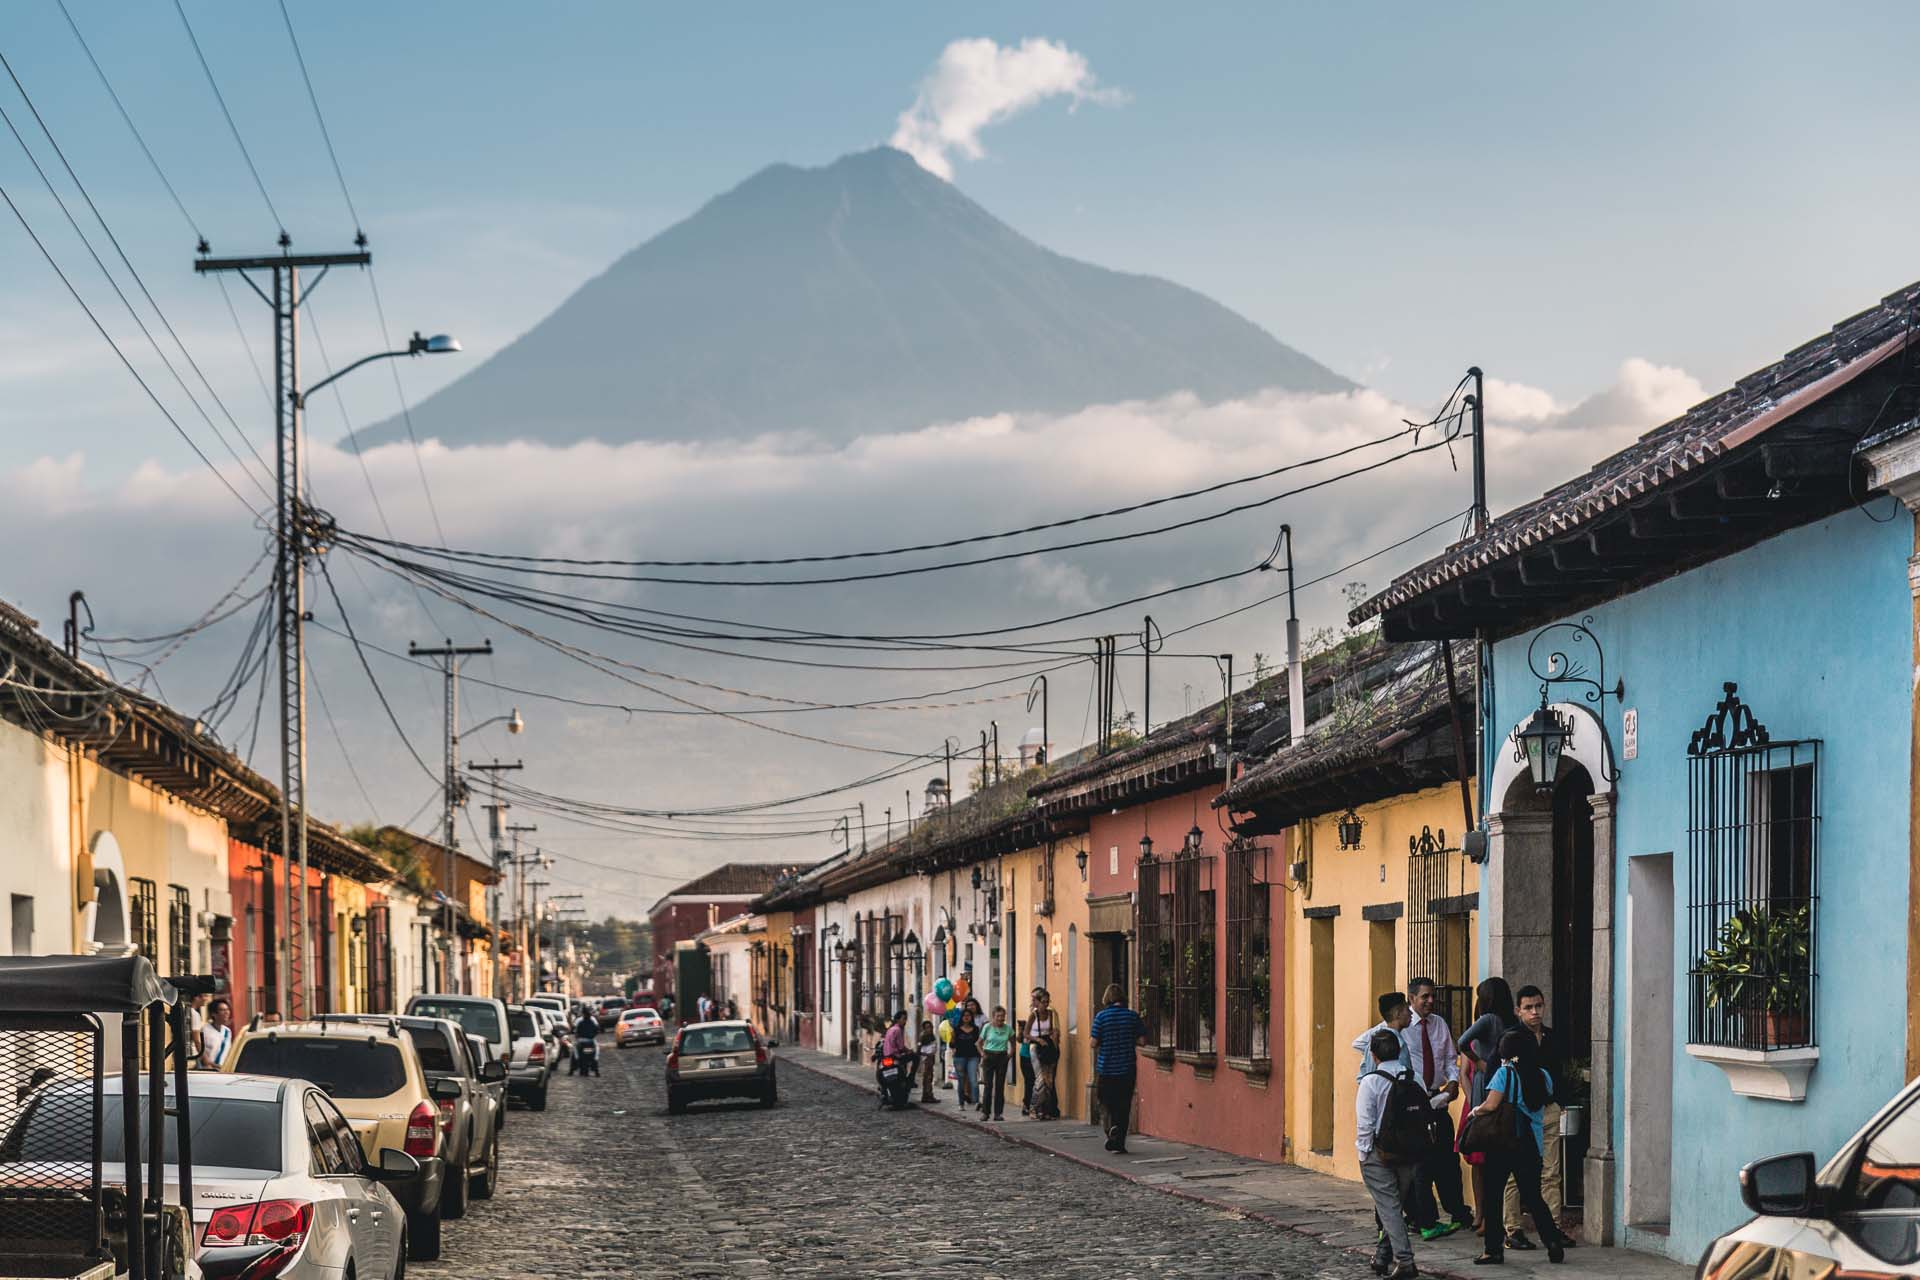 After a quick stop in Guatemala City, our first destination in Guatemala was Antigua. Here one of the main streets is seen with a towering volcano in the background - strangely only showing itself for a few minutes a day (due to clouds).